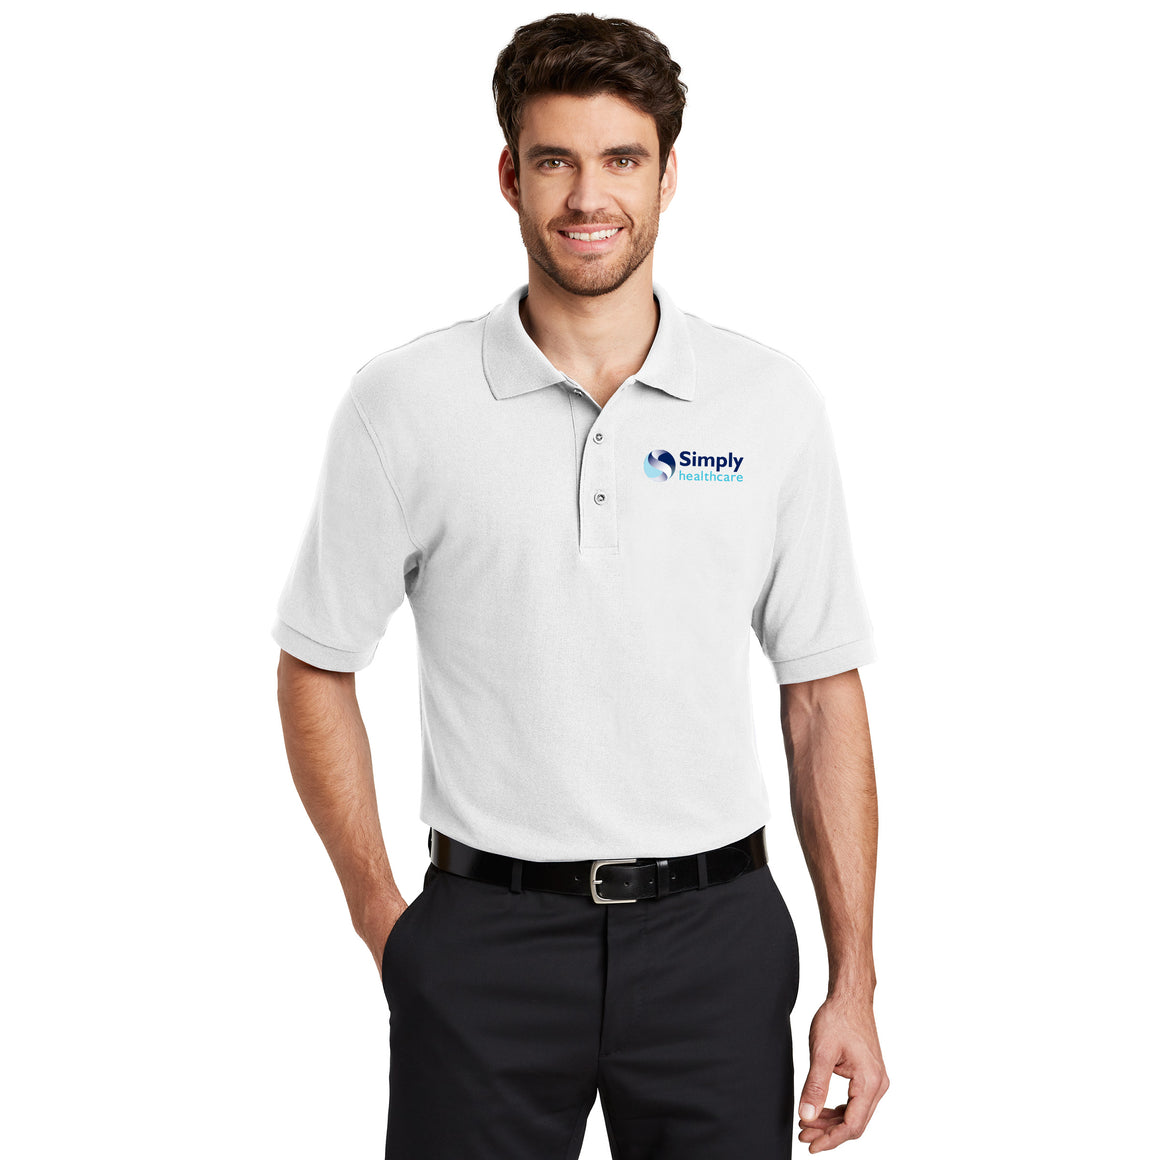 Men's Port Authority - Silk Touch PoloShirt (LT Sizing)